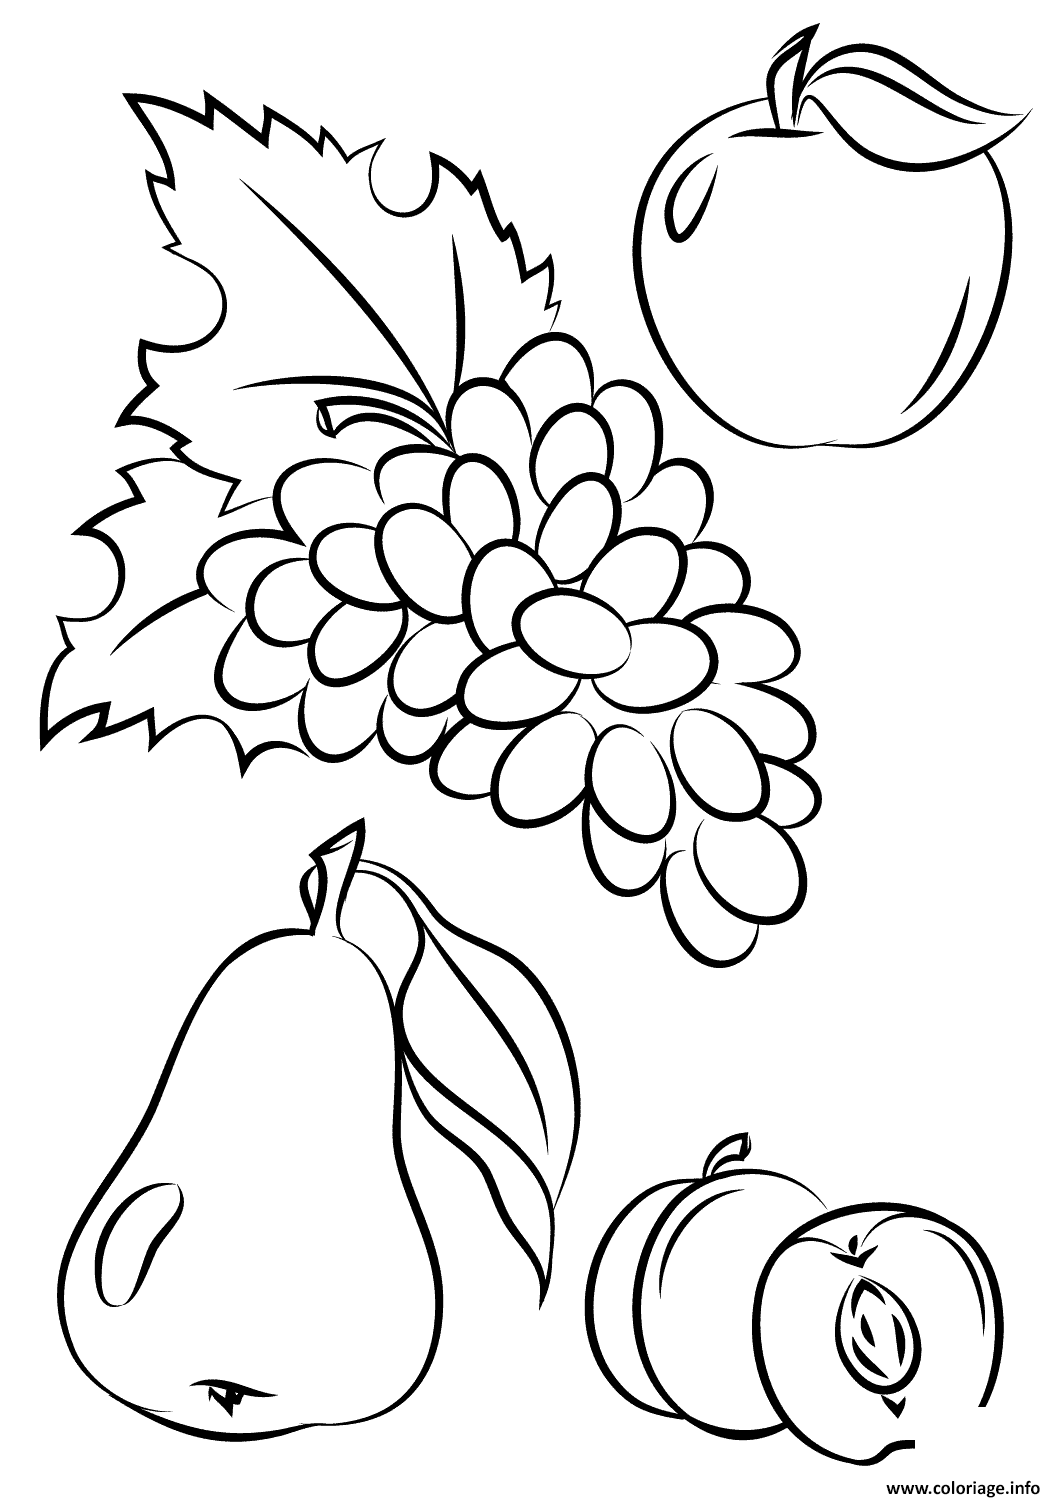 Coloriage Automne Fruits Fall Jecoloriecom